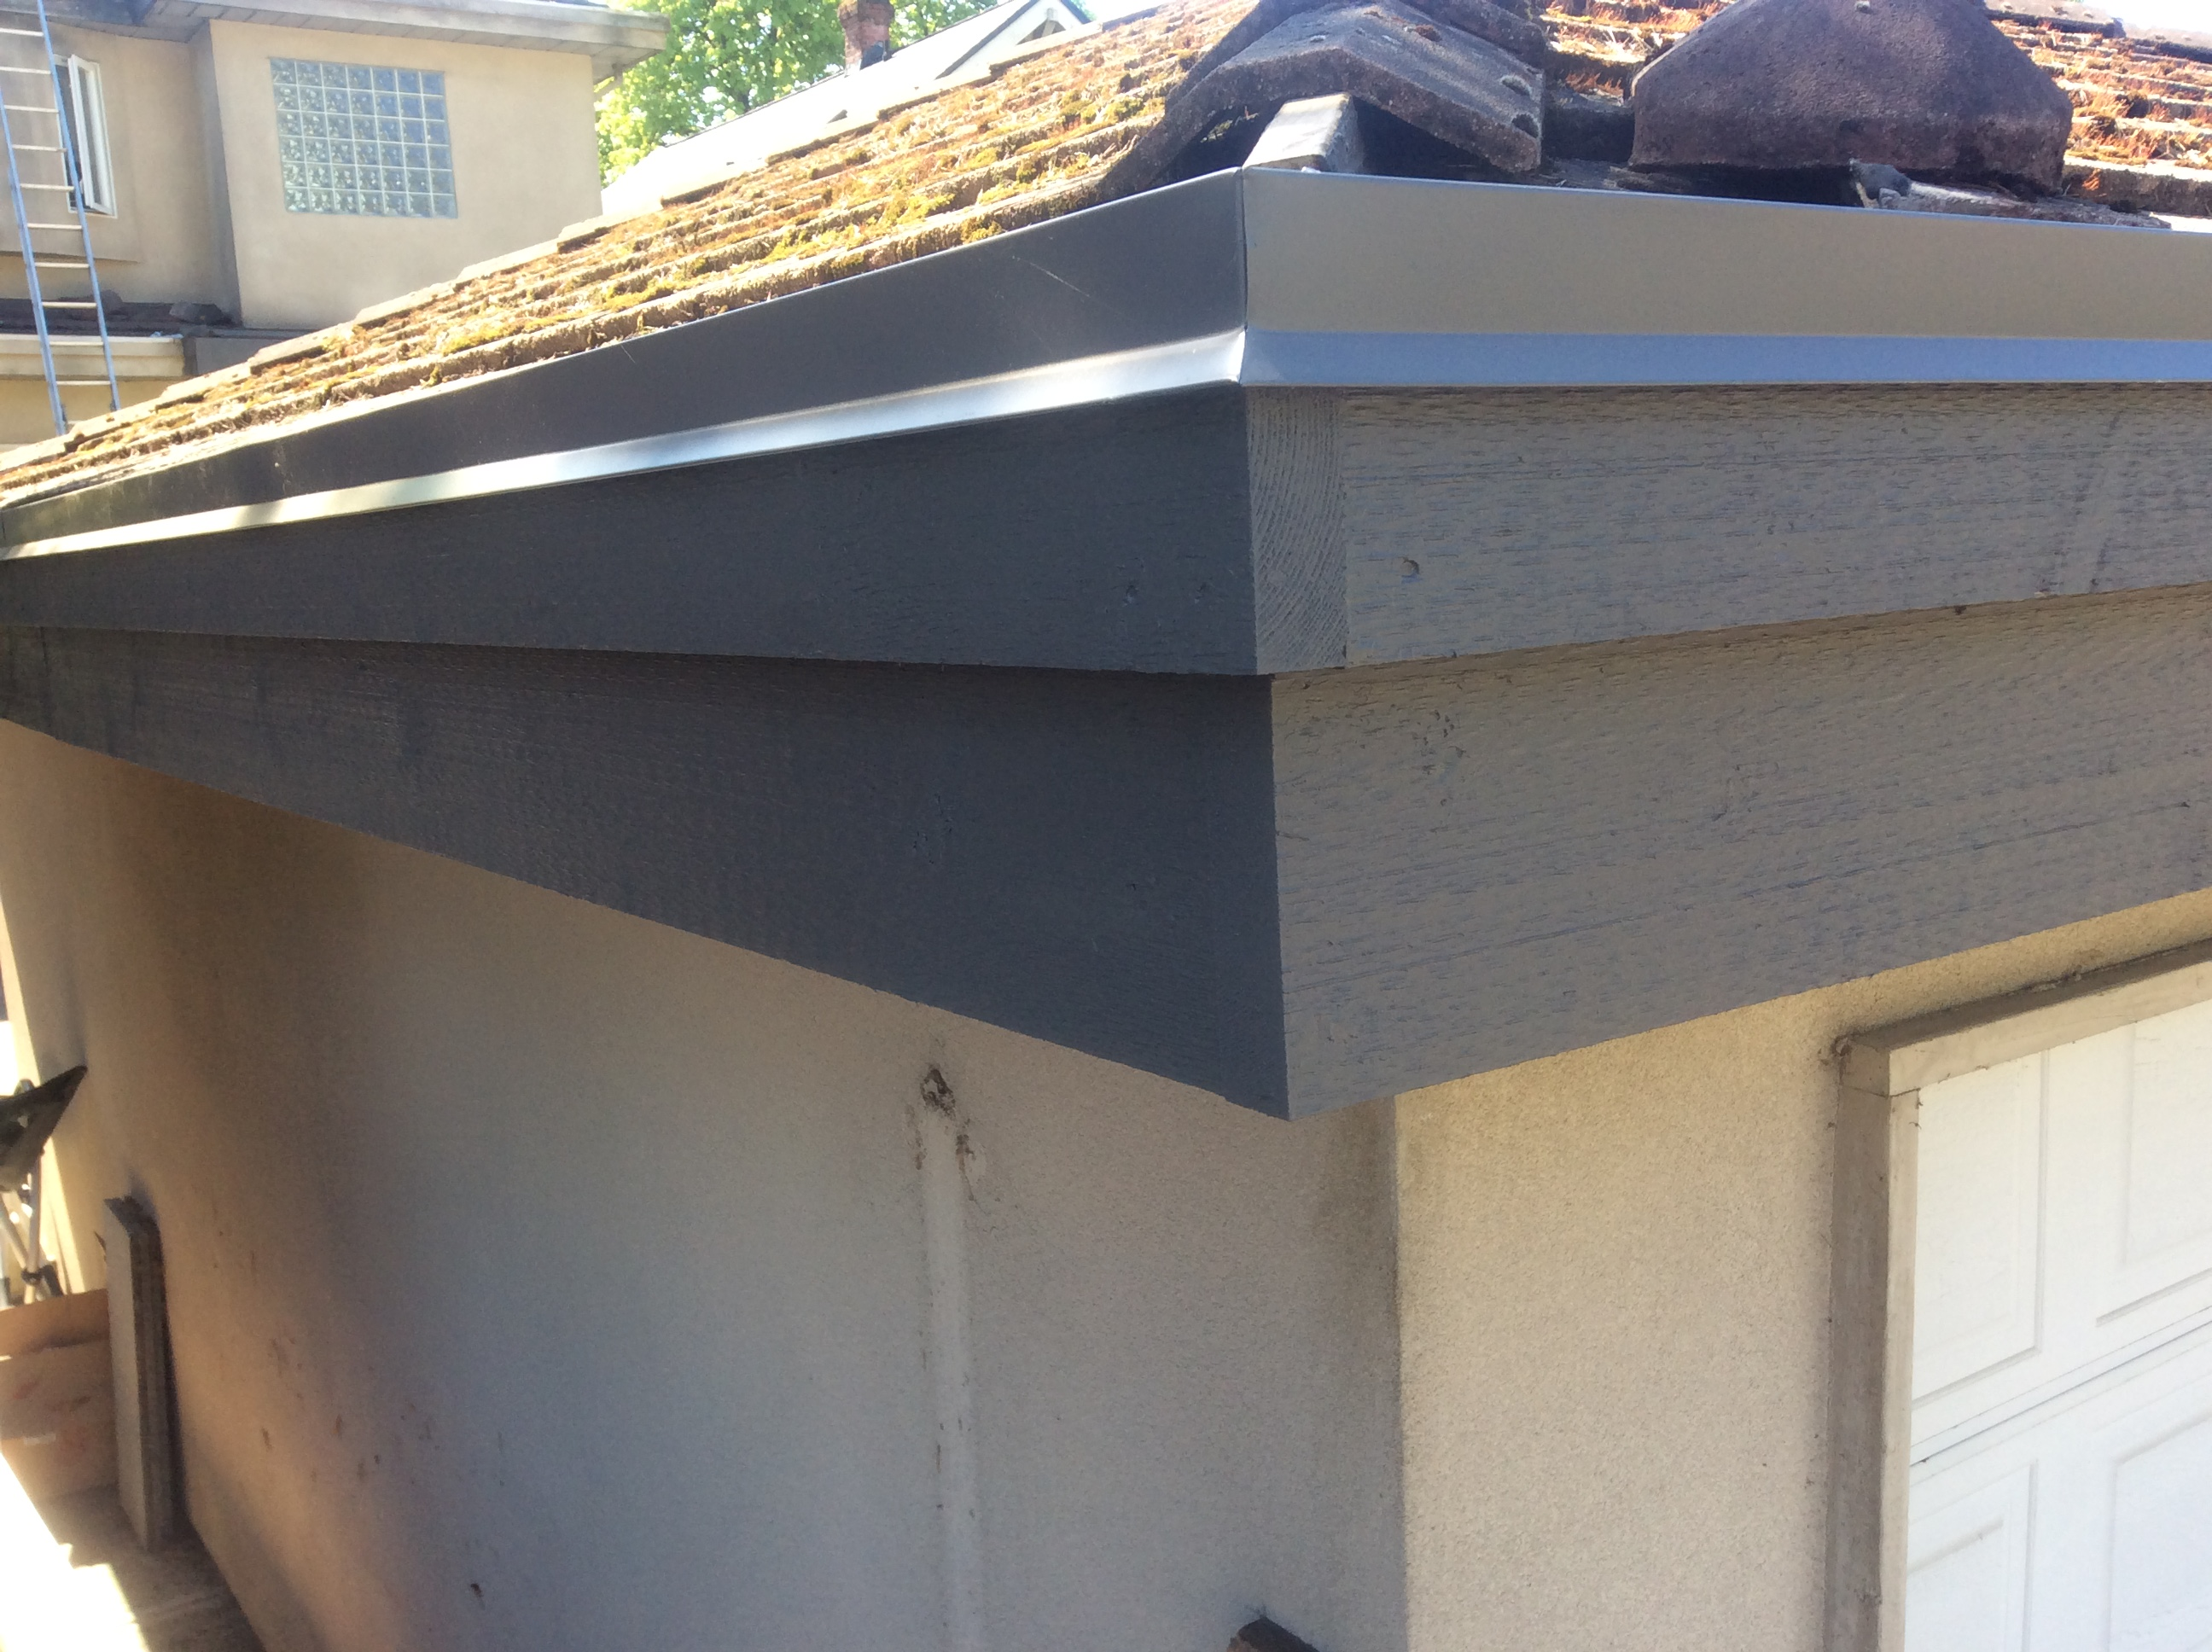 Hidden Gutter Repair for Kitsilano Home - Restored Facia Board and Gutter System